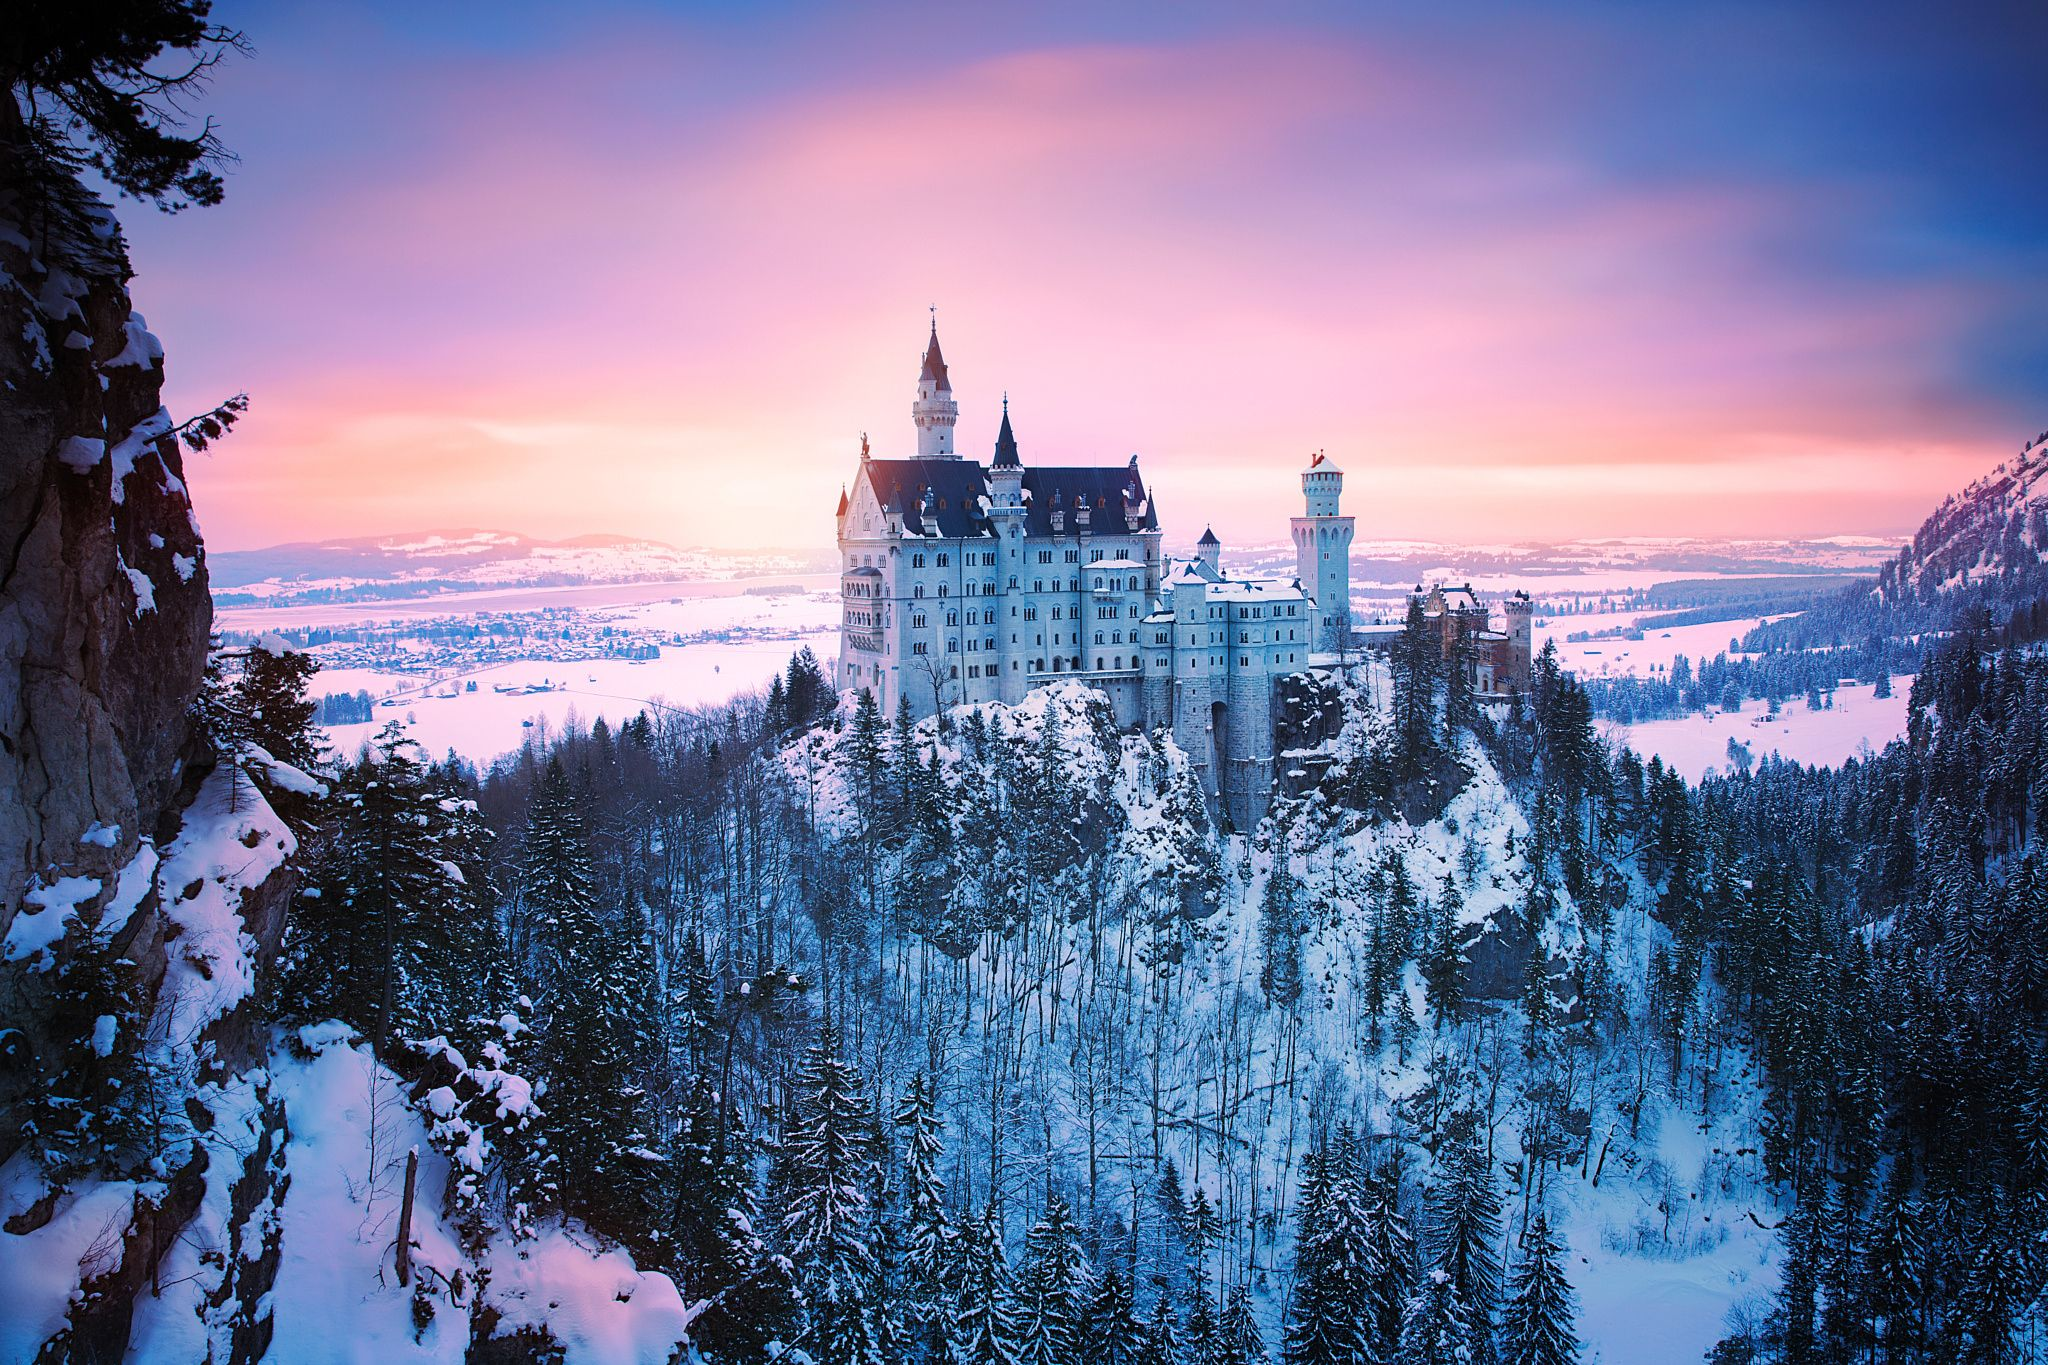 The Neuschwanstein Castle With Its White Limestone Facade And Deep Blue Turrets Is Rumored To Be The Real Life In Neuschwanstein Castle Castle Bavaria Castle